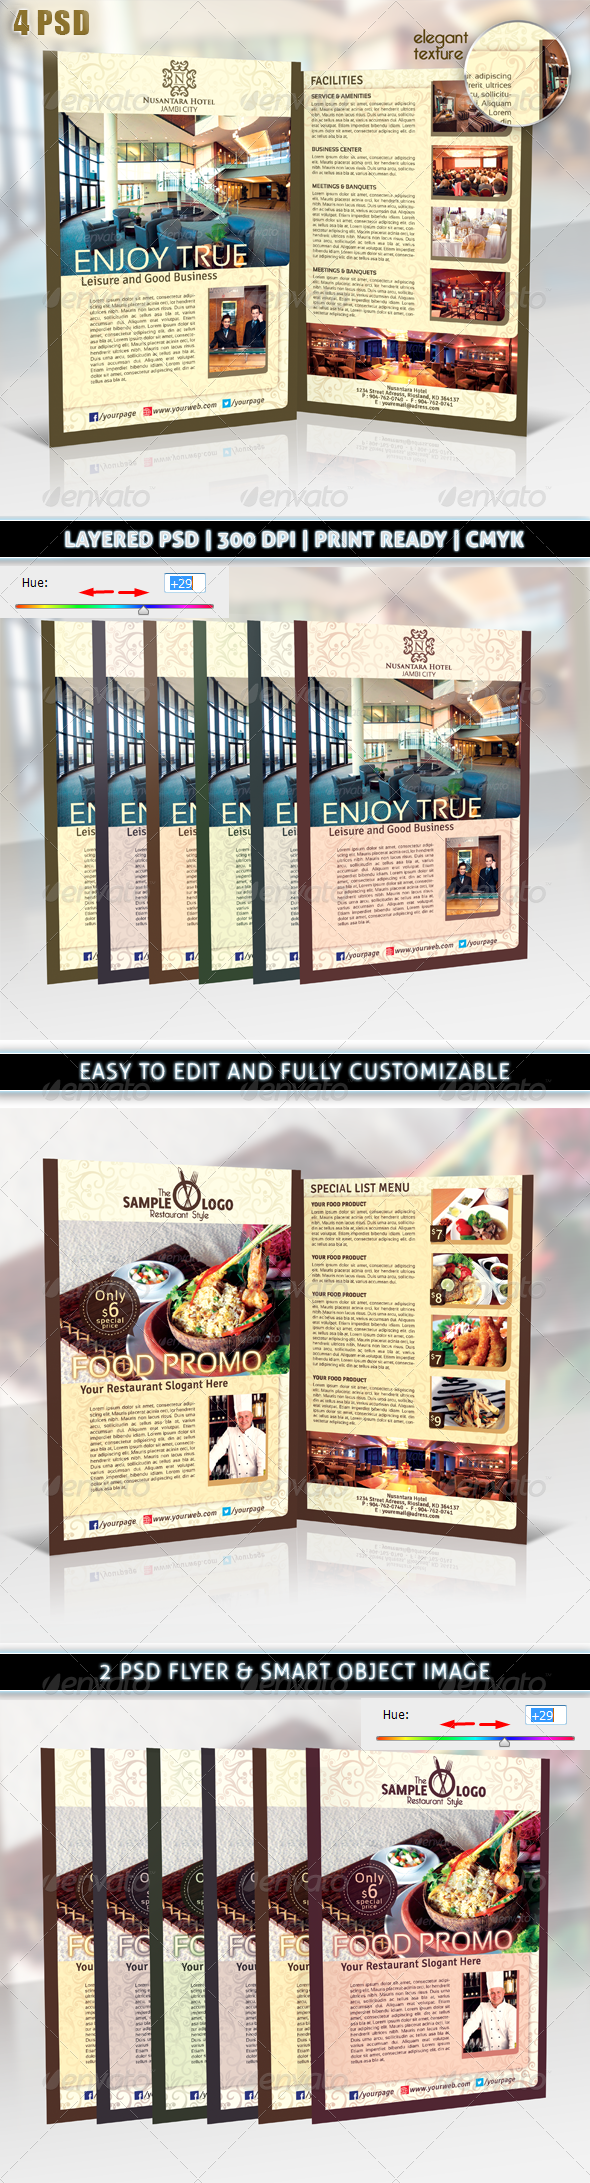 Hotel or Restaurant Elegant Promotion Flyer - Corporate Flyers